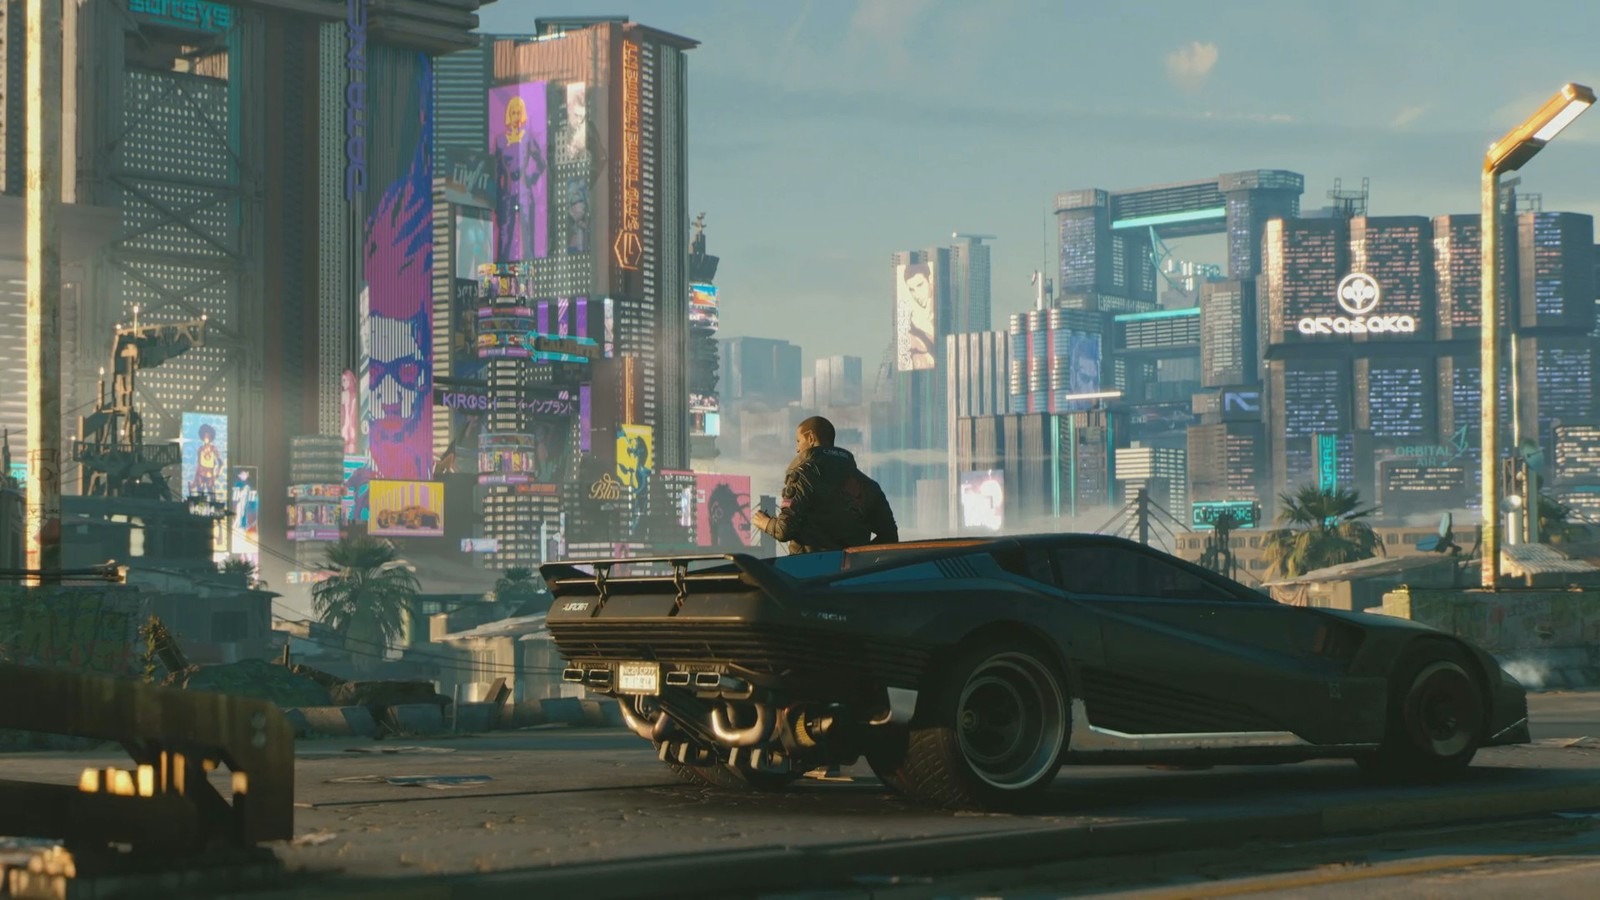 Cyberpunk 2077 was a fan favorite among viewers and at the show.